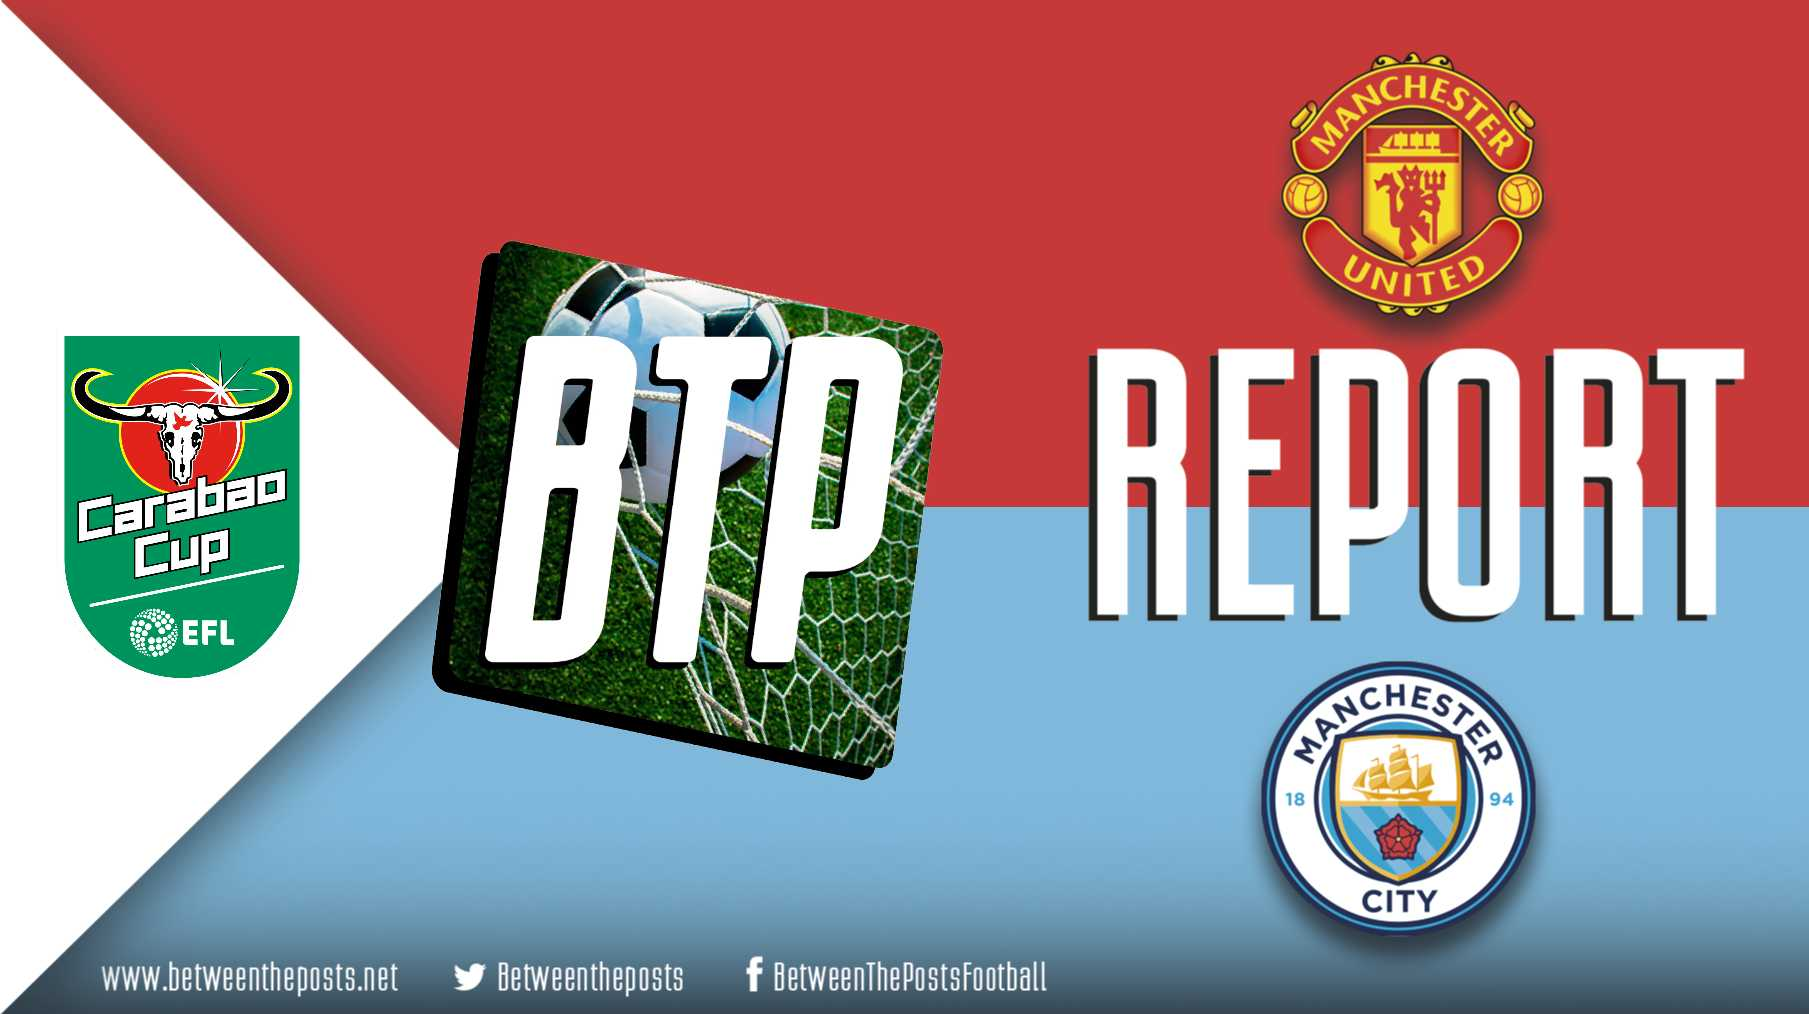 Manchester United Manchester City 0-2 Carabao League Cup